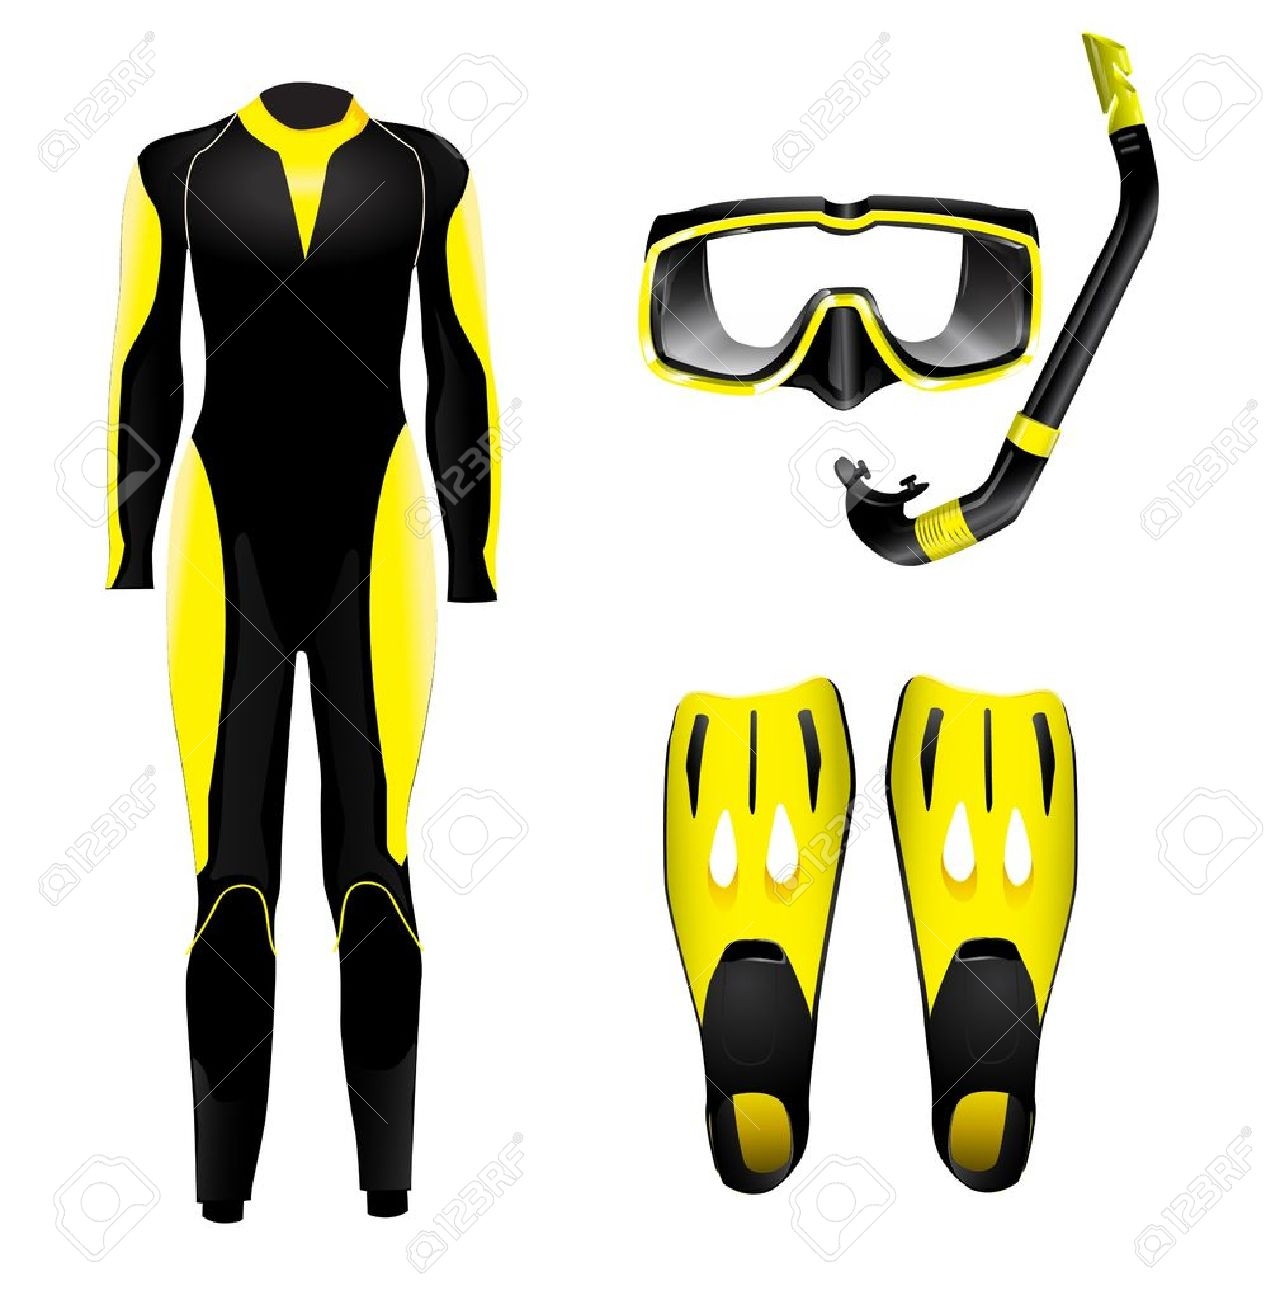 Diving Equipment Royalty Free Cliparts, Vectors, And Stock.